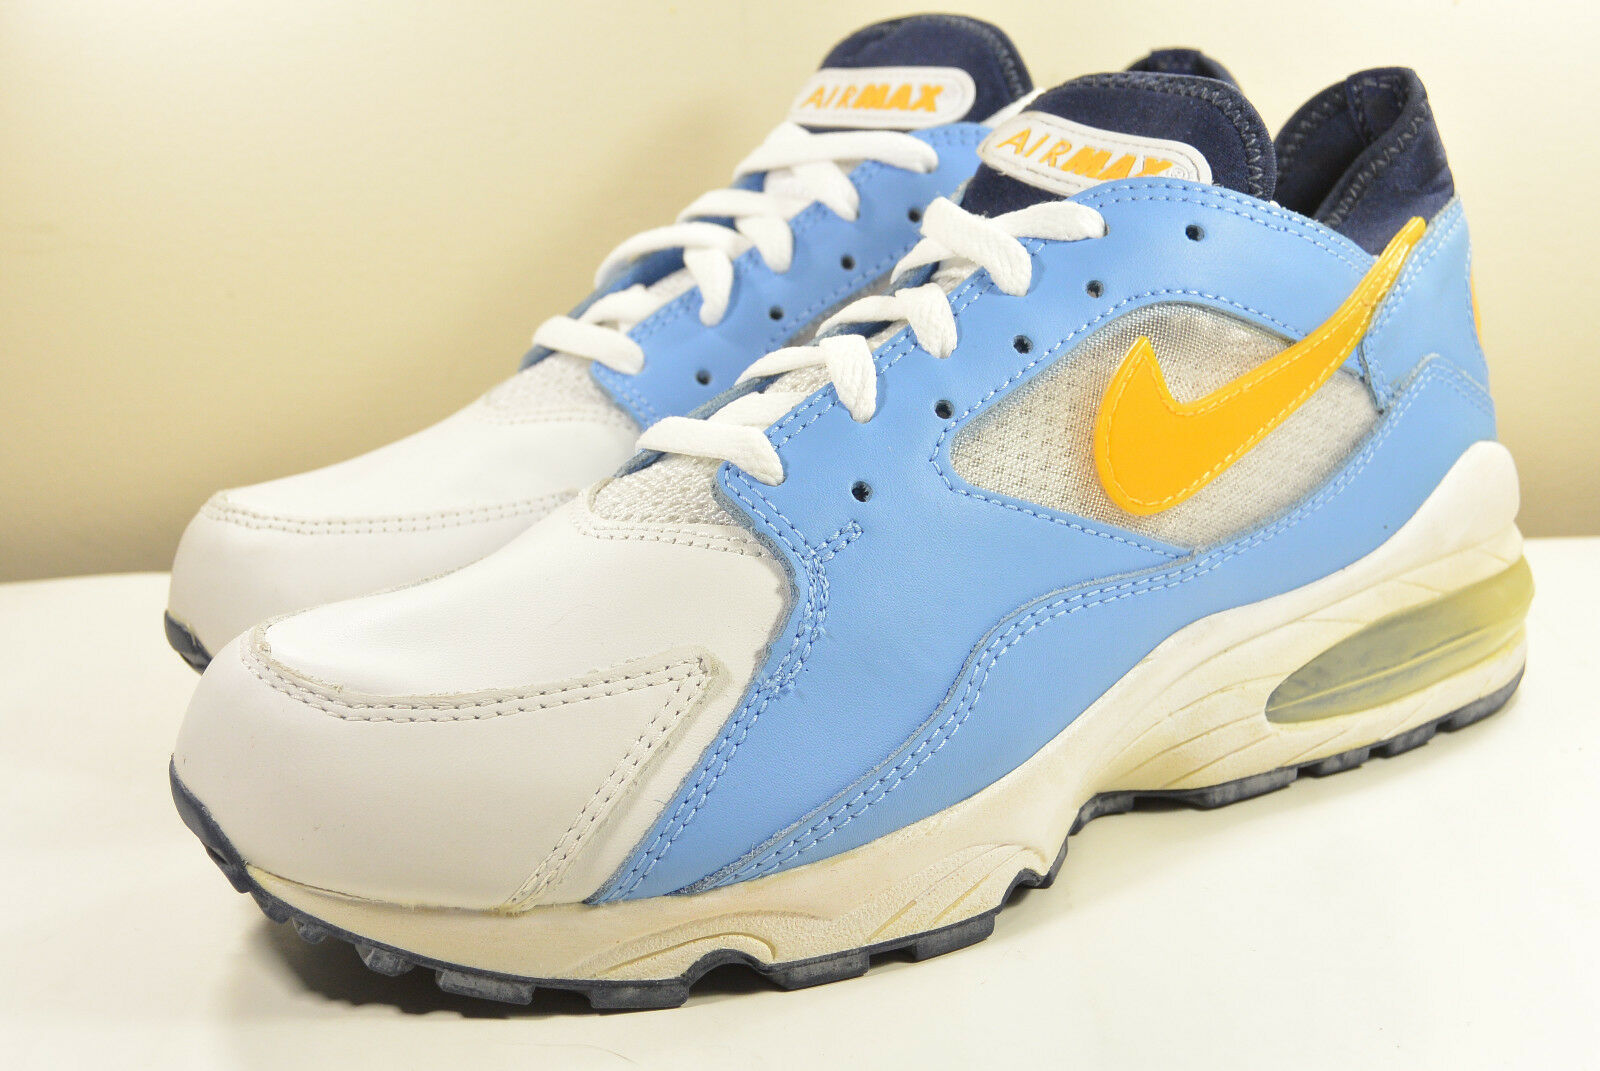 DS NIKE 2013 SAMPLE AIR MAX 93 DEL SOL UNIVERSITY blueE 9 PATTA ATMOS 90 1 97 95